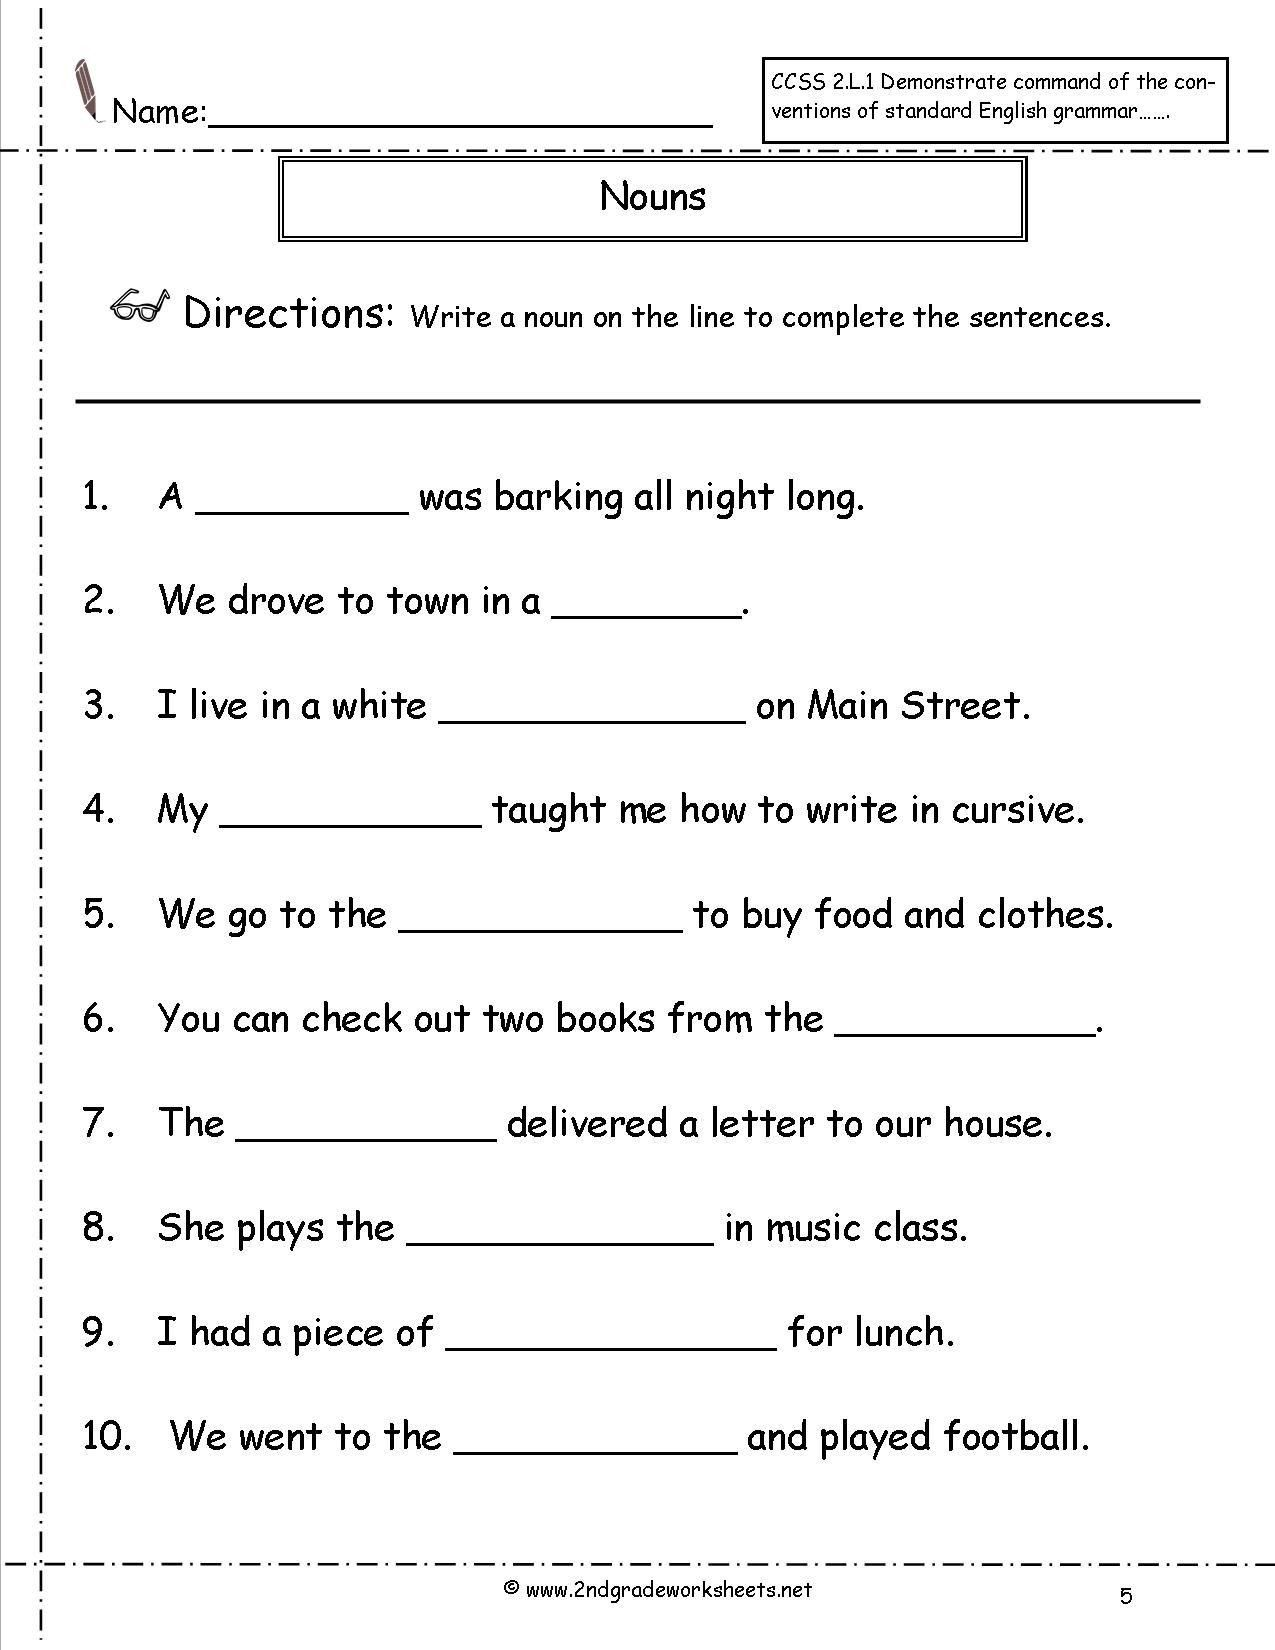 hight resolution of 3rd Grade Grammar Worksheets Free Math Worksheet 2nd Grade Grammar  Worksheets Math Workshe…   Nouns worksheet